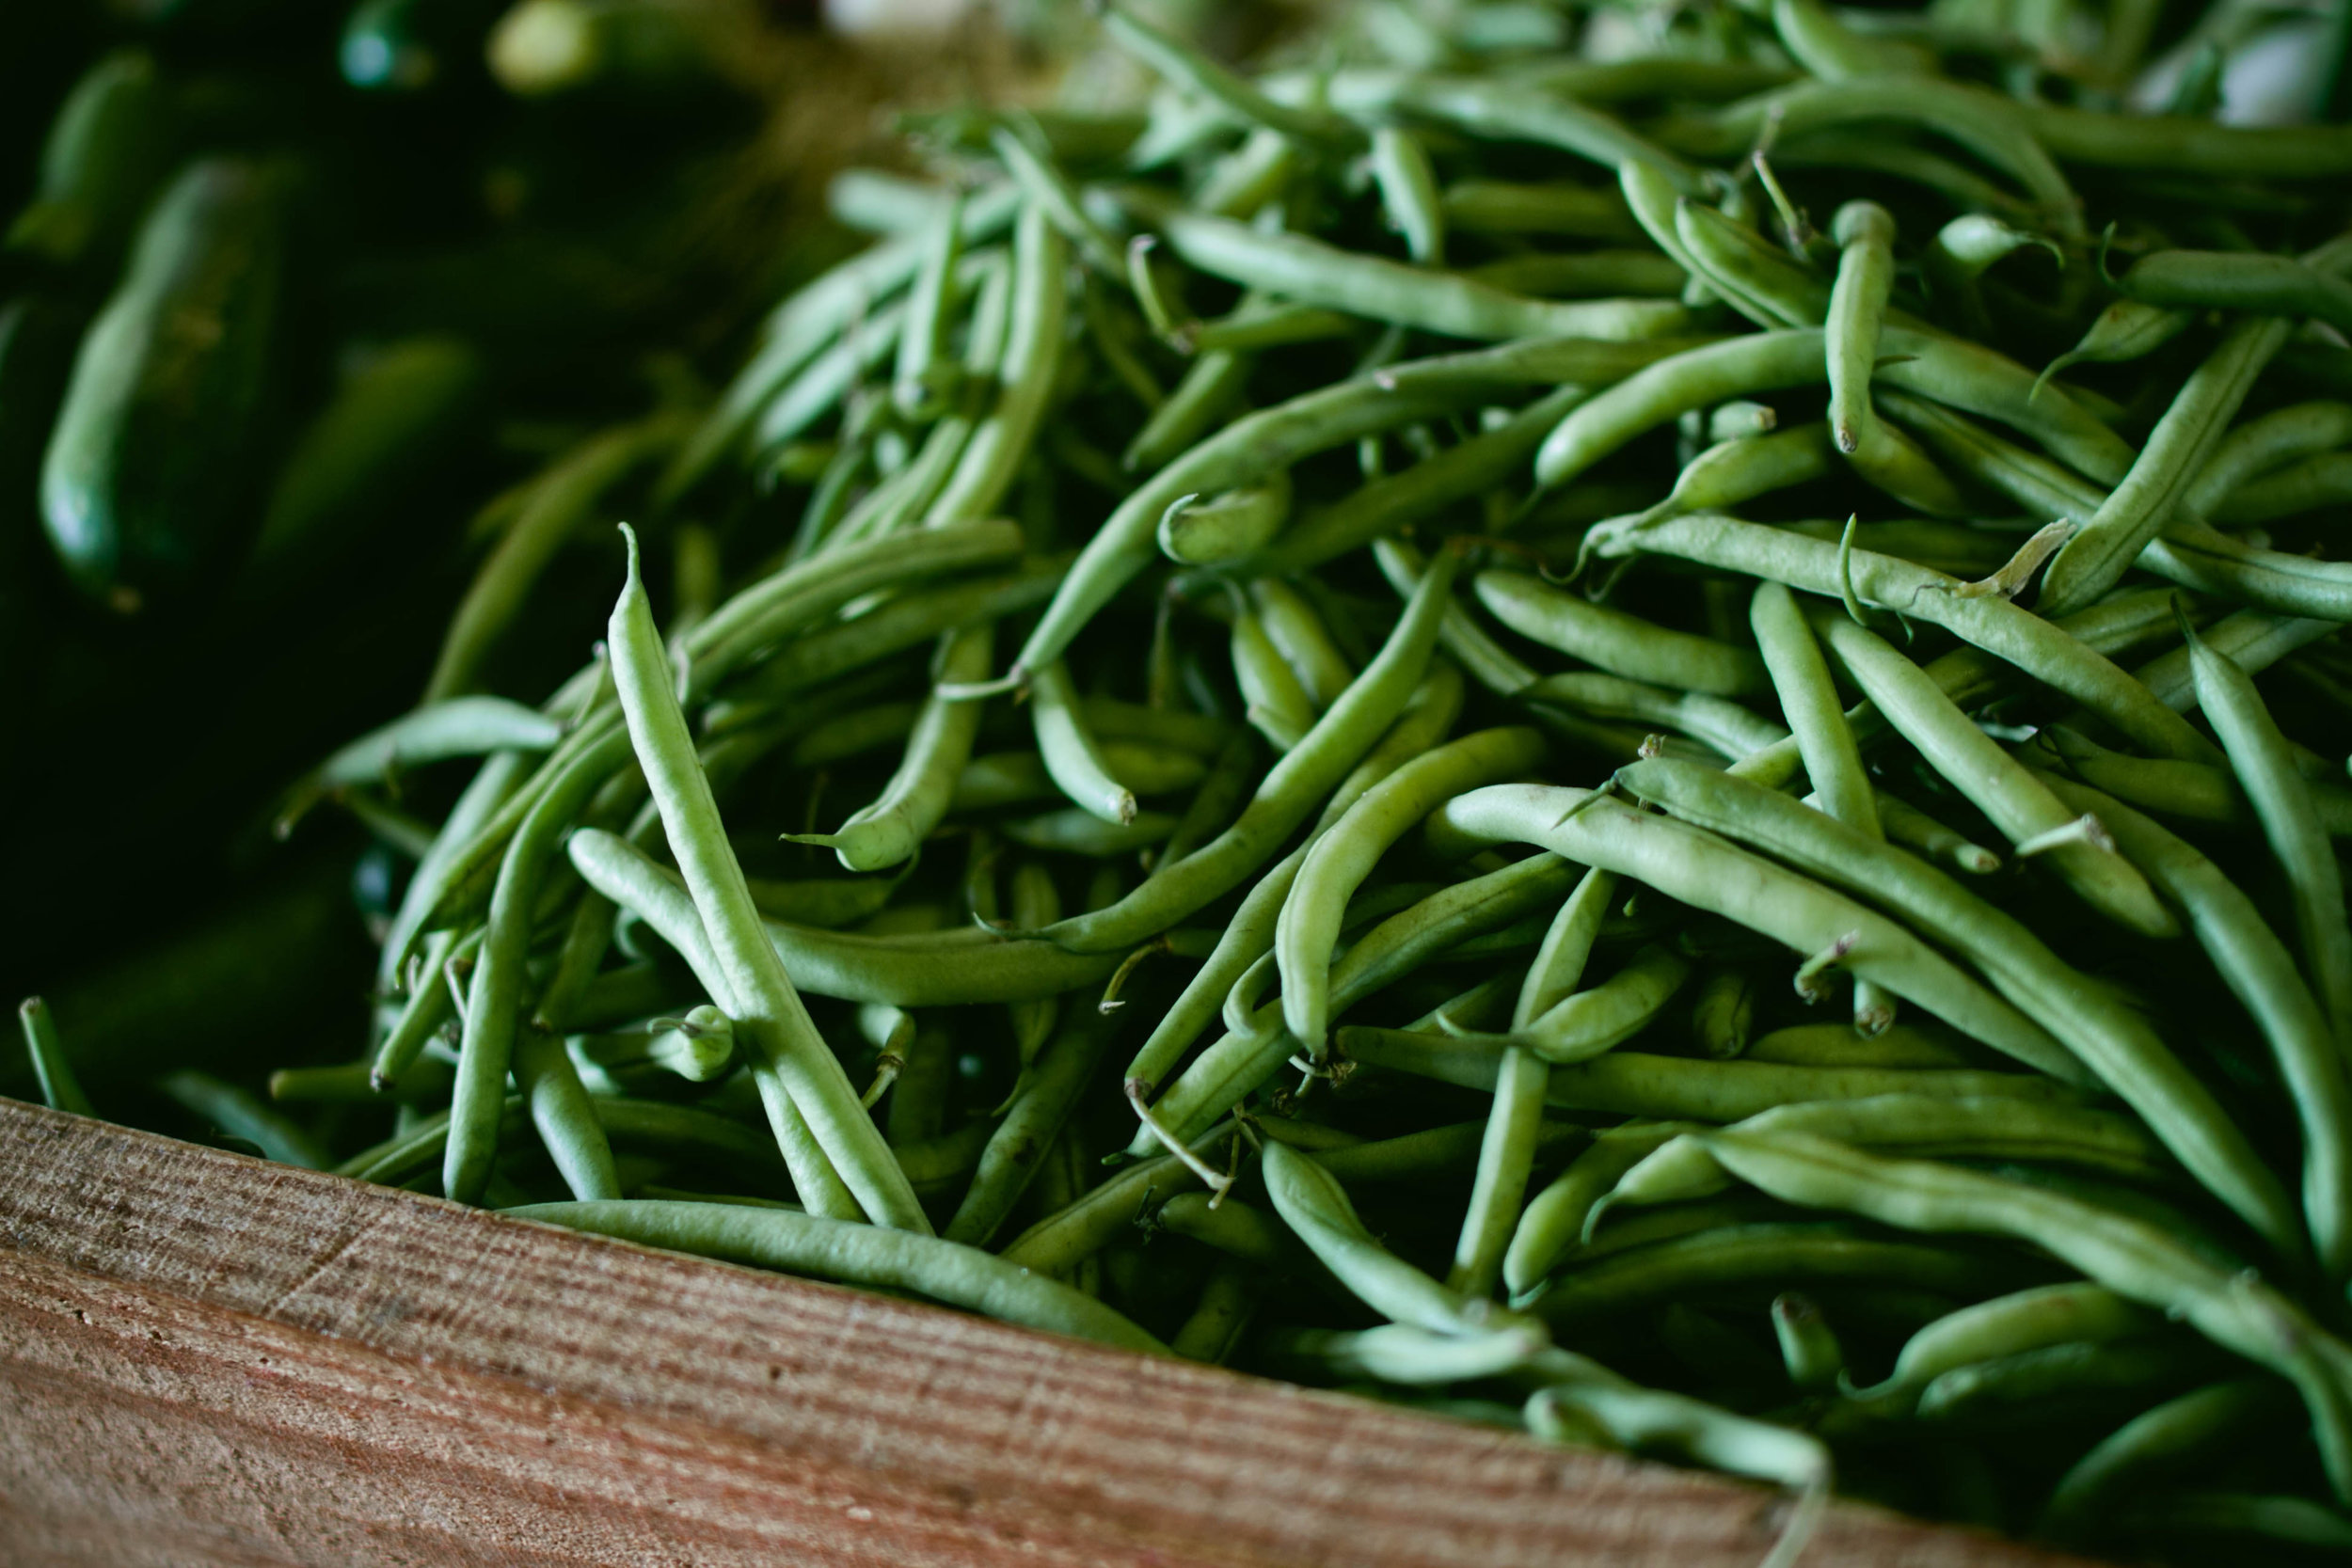 Green beans - Green beans are a great source of protein, fiber and folate, Vitamin A, Vitamin C, as well as potassium, iron, and zinc. Green beans have no cholesterol.